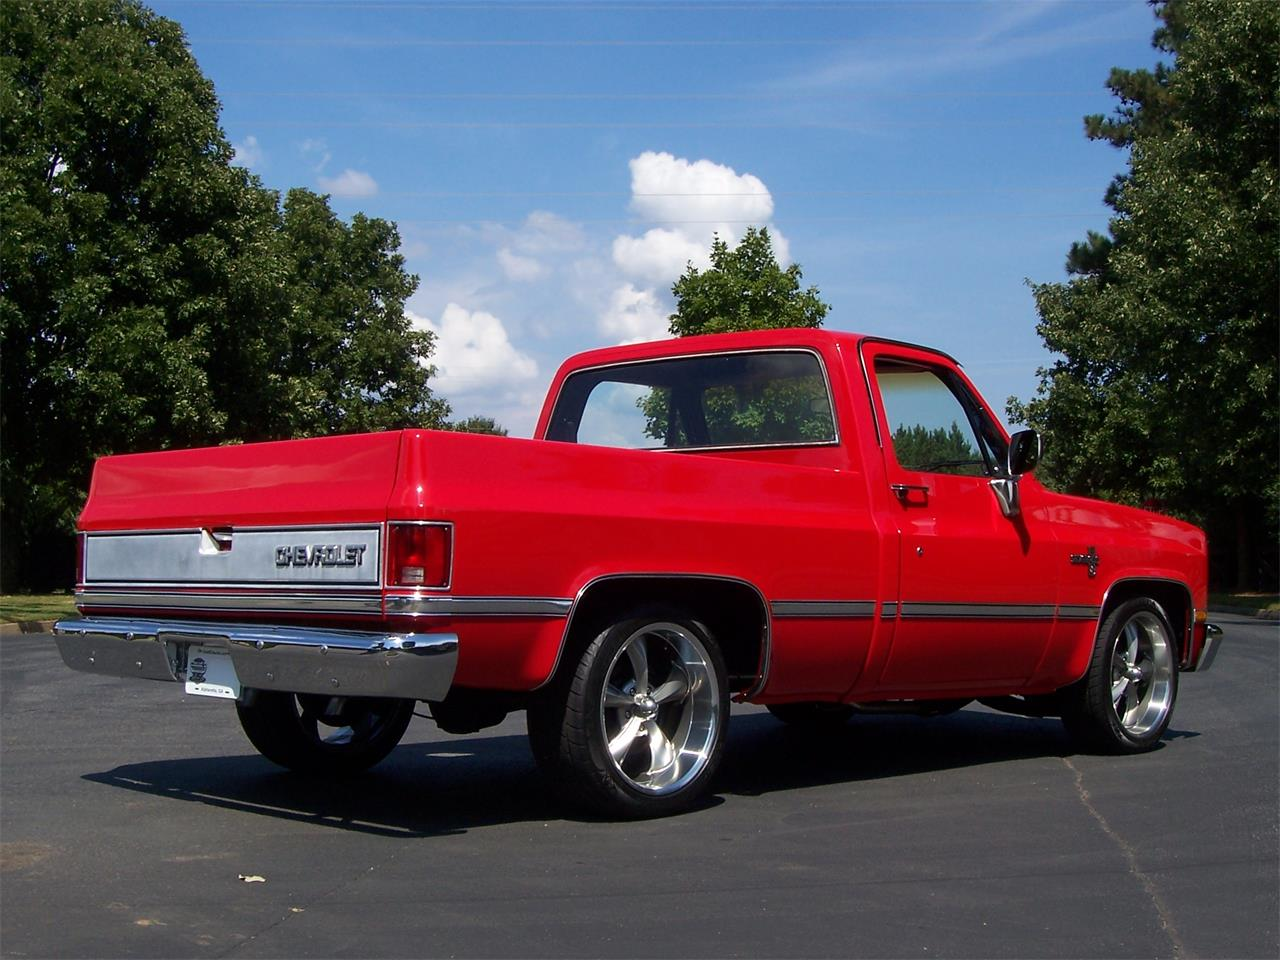 1985 Chevrolet C/K 10 for sale in Alpharetta, GA – photo 88